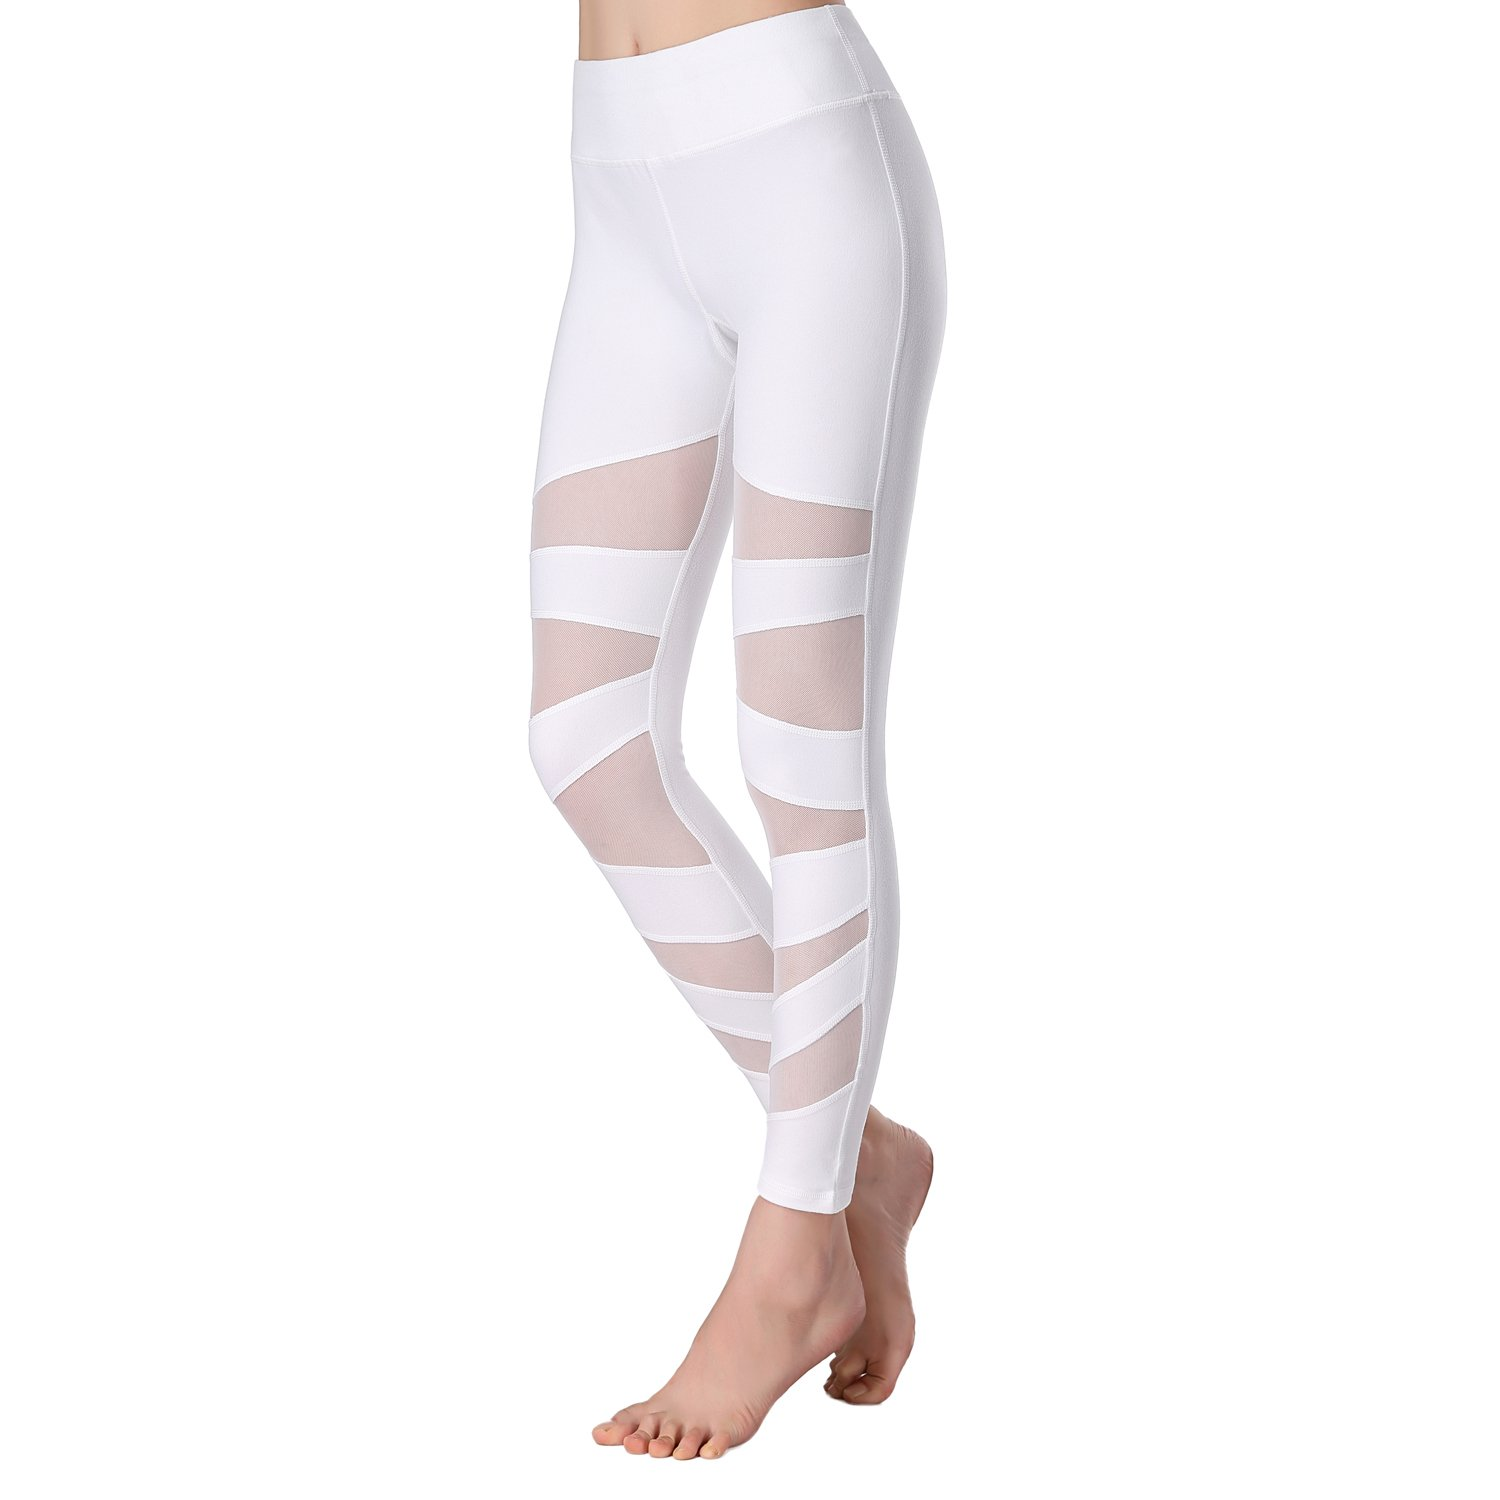 newlashua Mesh Yoga Pants Tummy Control 4 Way Stretch Gym Workout Leggings Beepeak pant07-2